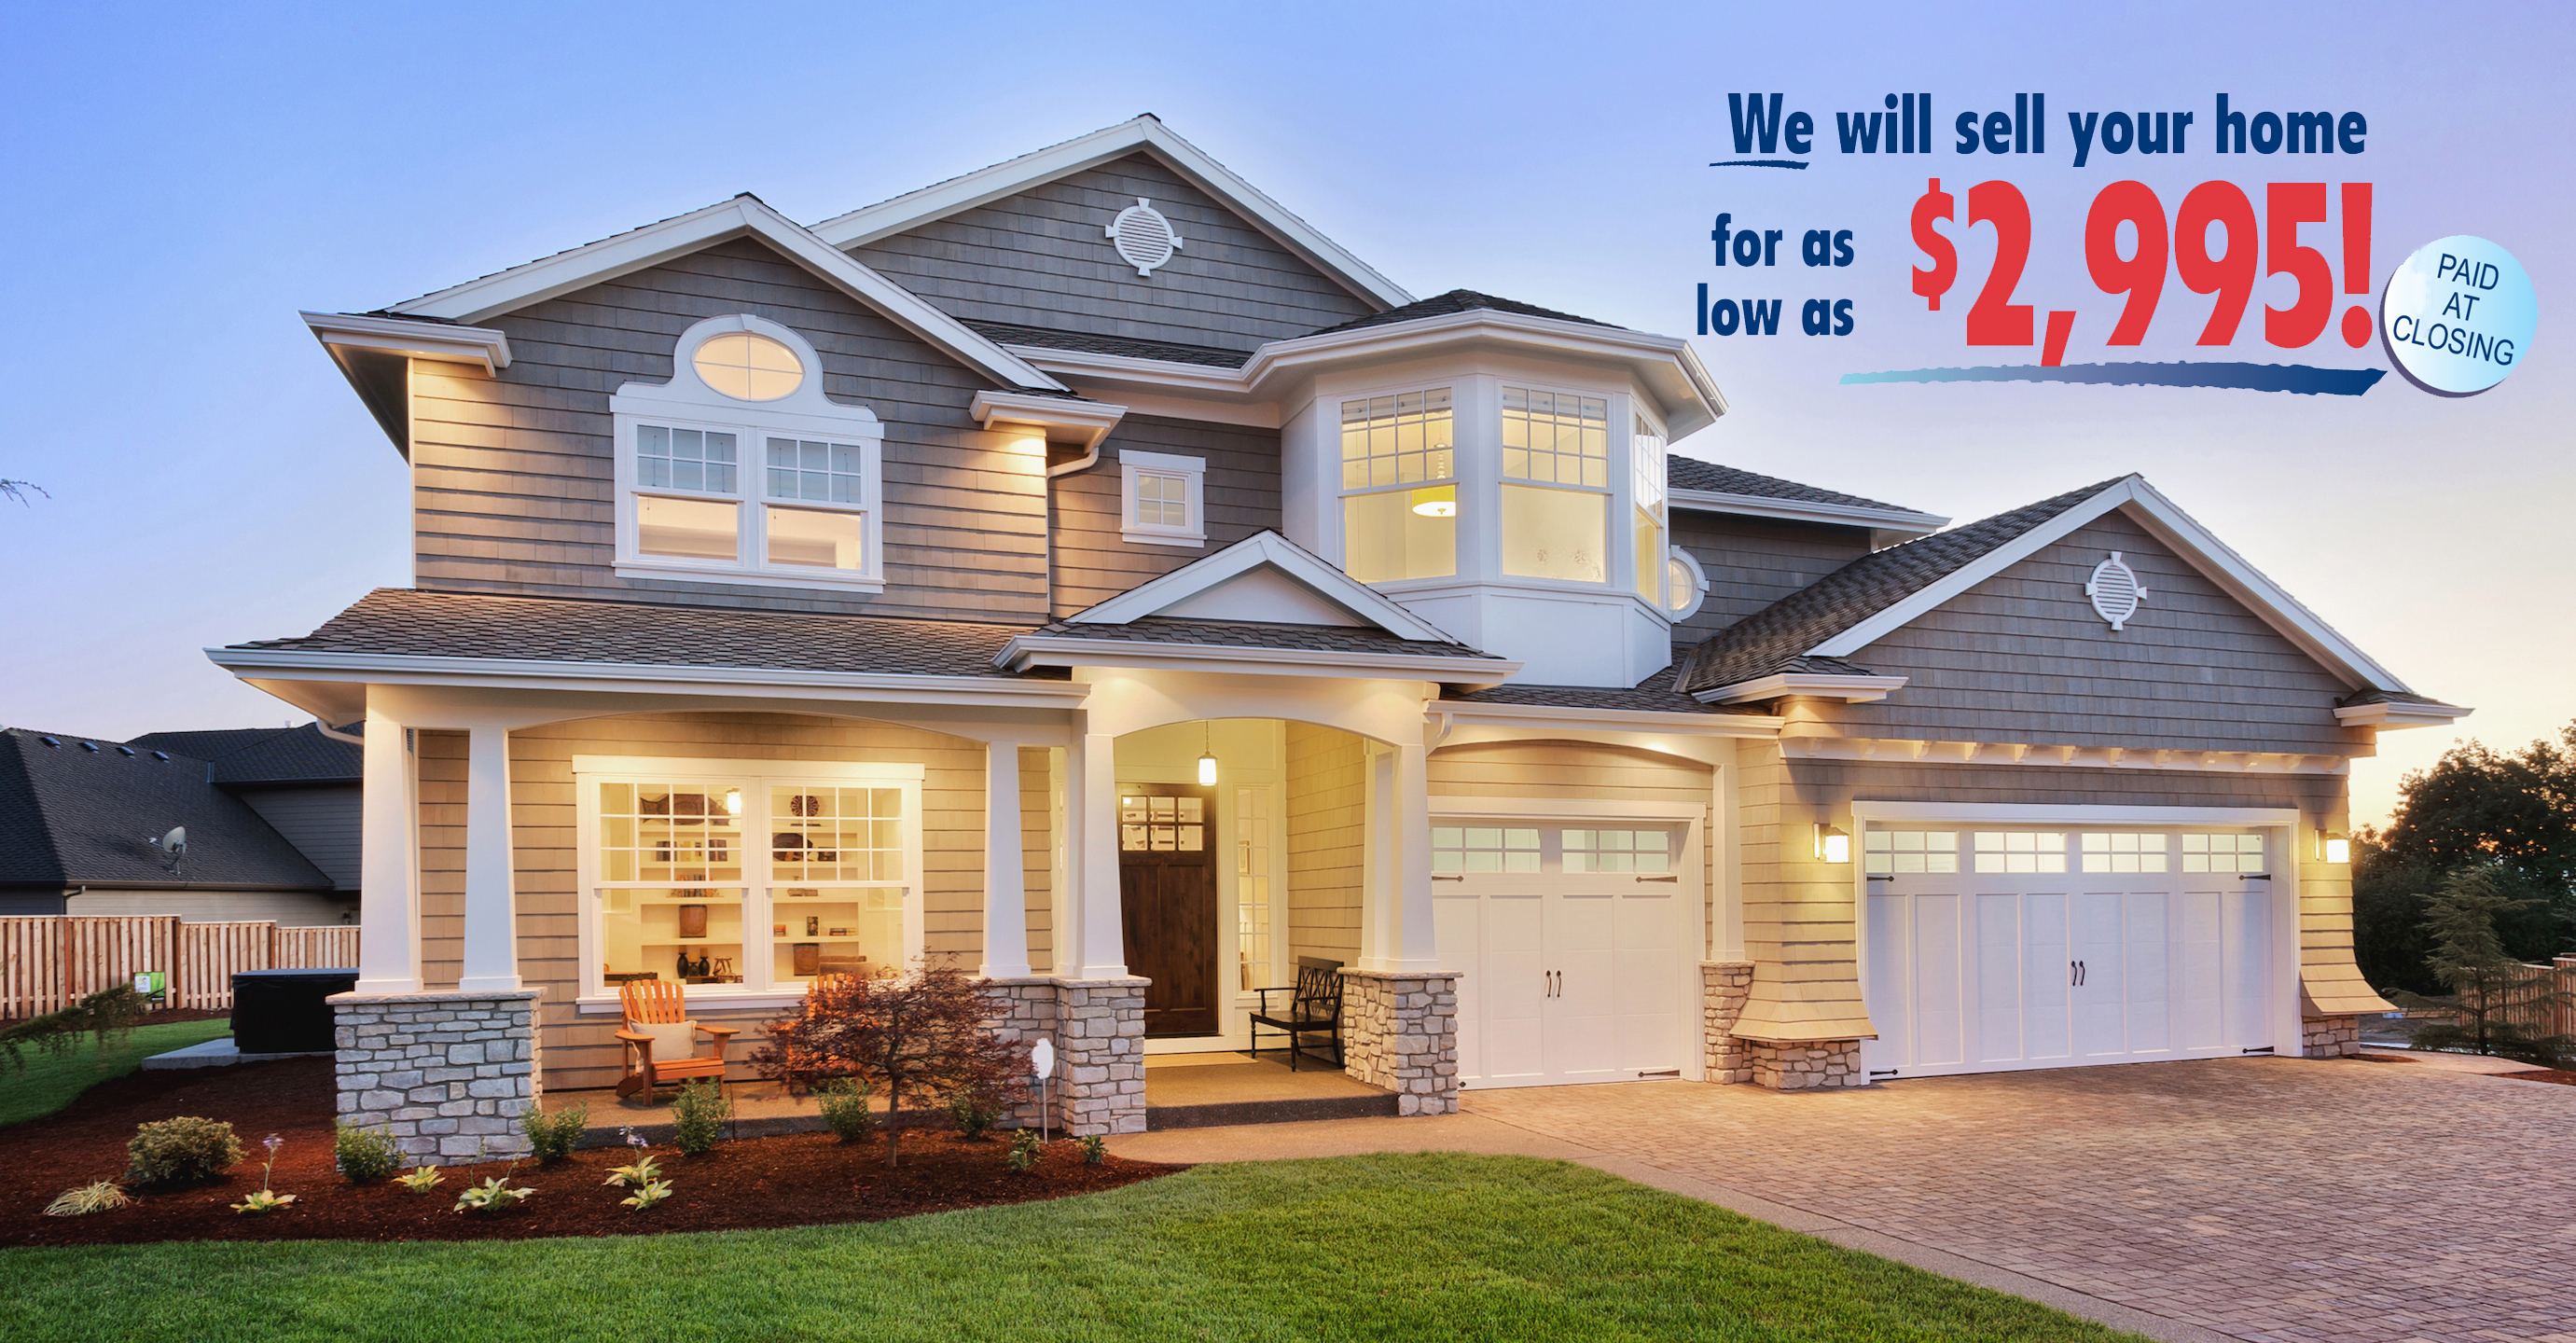 apartement and home for sale rent homes for sale in lenawee county